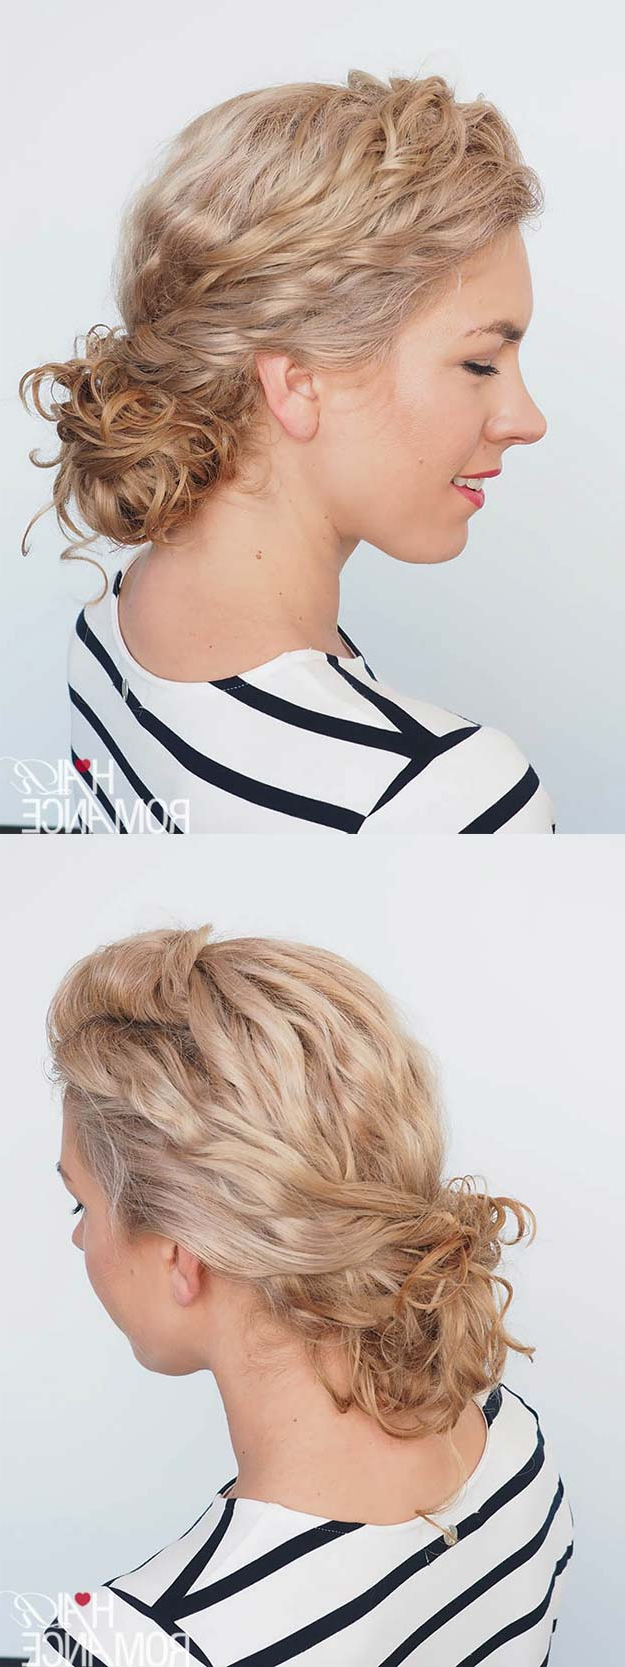 Trendy Twenties Medium Hairstyles In 33 Best Hairstyles For Your 20S – The Goddess (View 15 of 20)